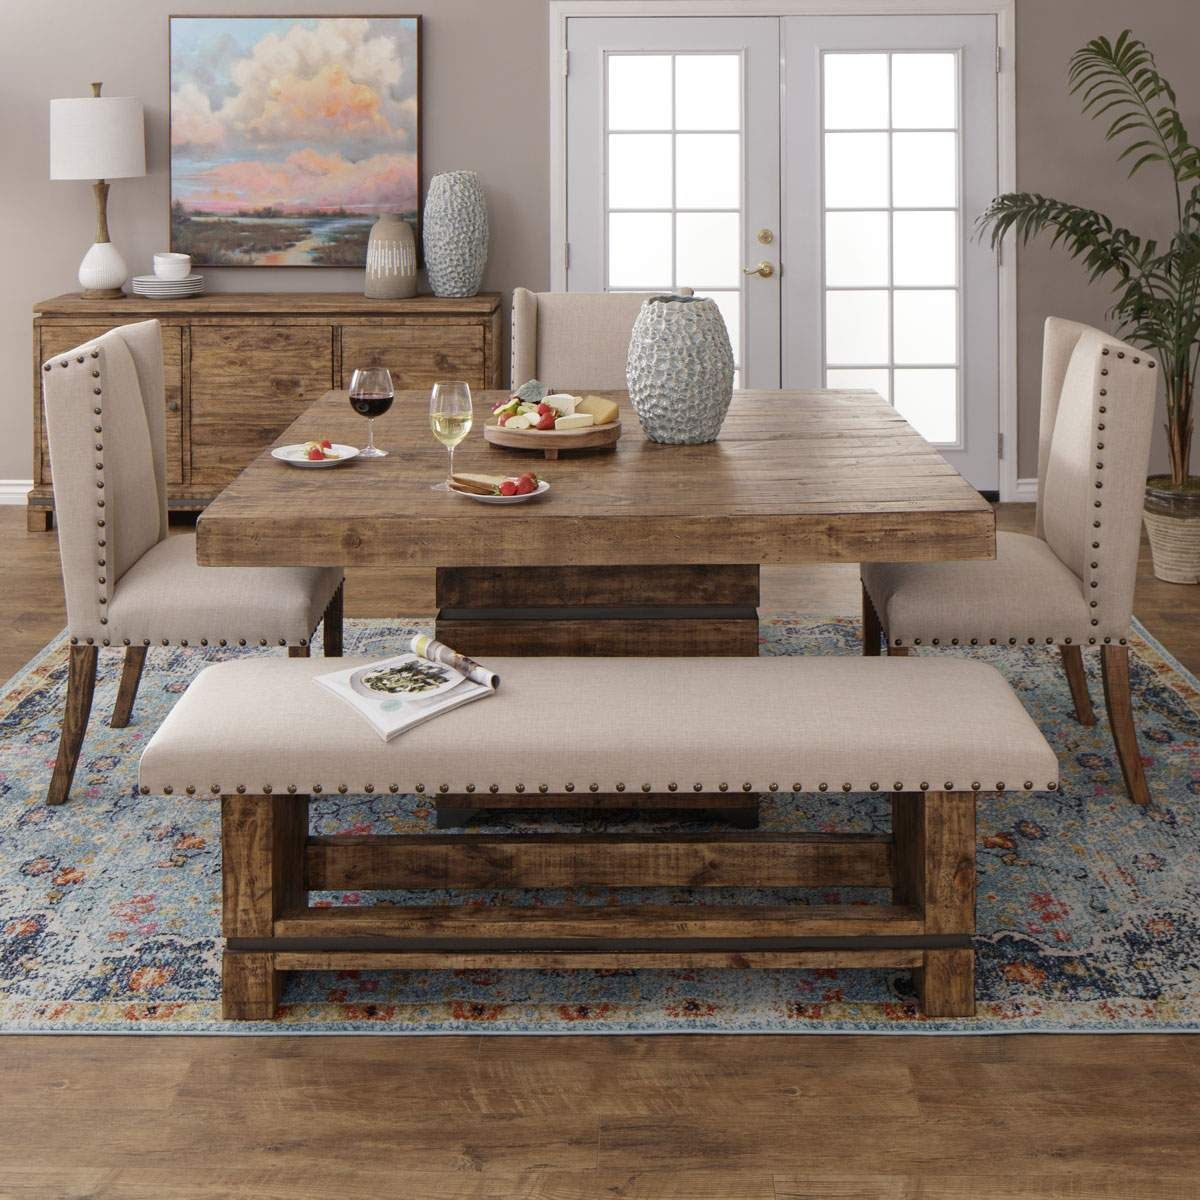 Century Rustic Dining Room Sets Dining Table With Bench Unique